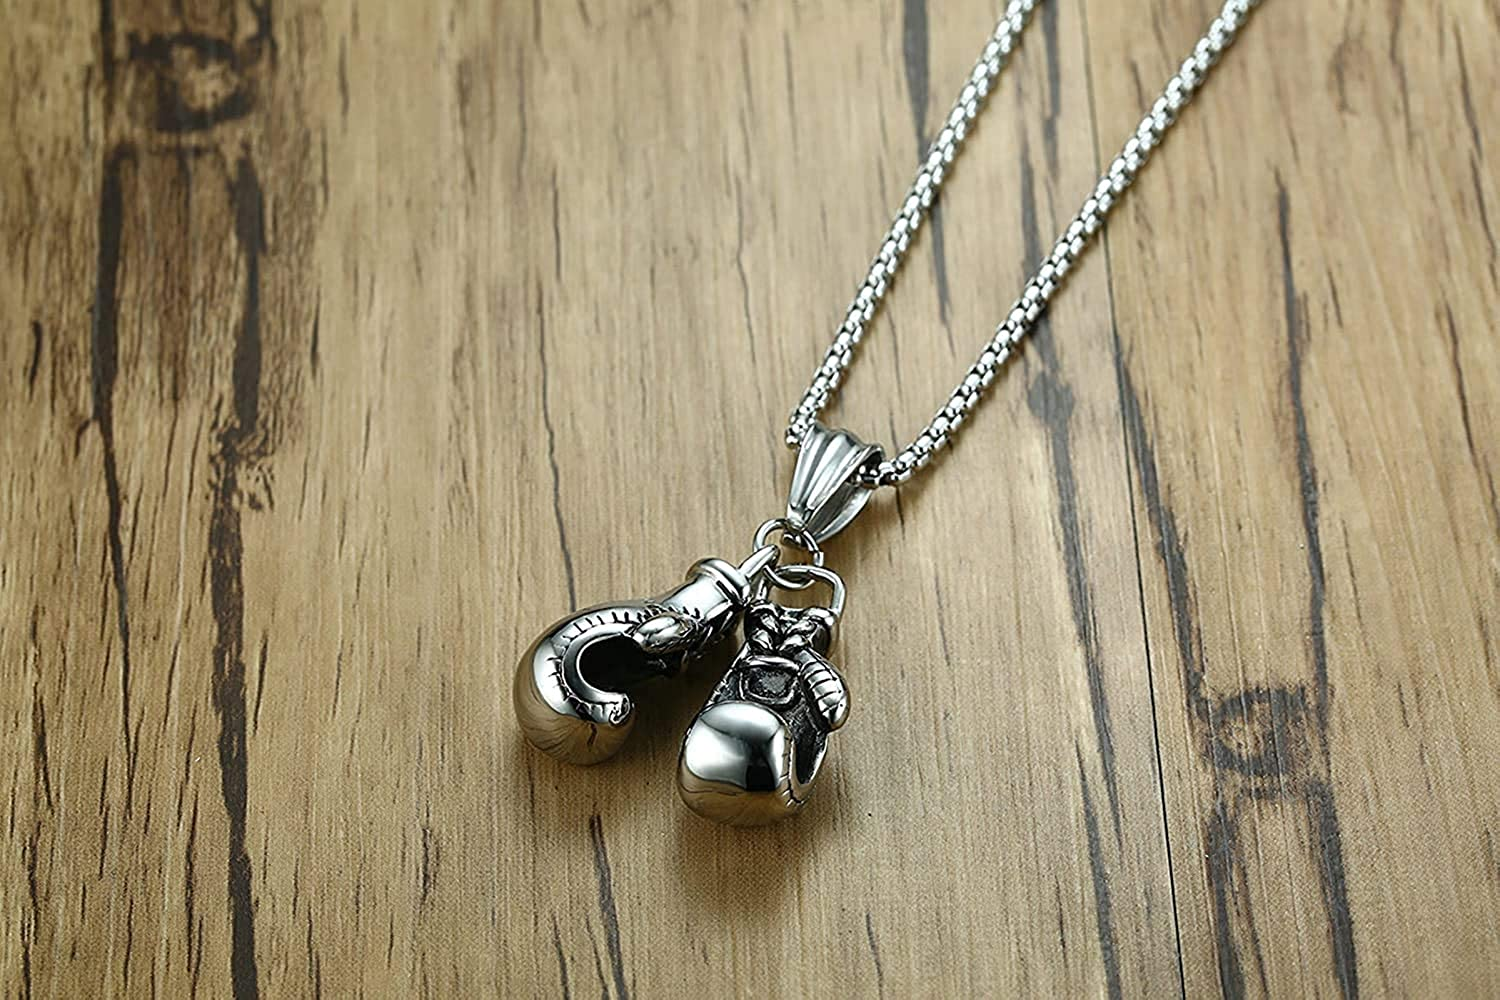 LOPEZ KENT Jewelry Men Stainless Steel Necklace Pendants Boxing Glvoes Pendant